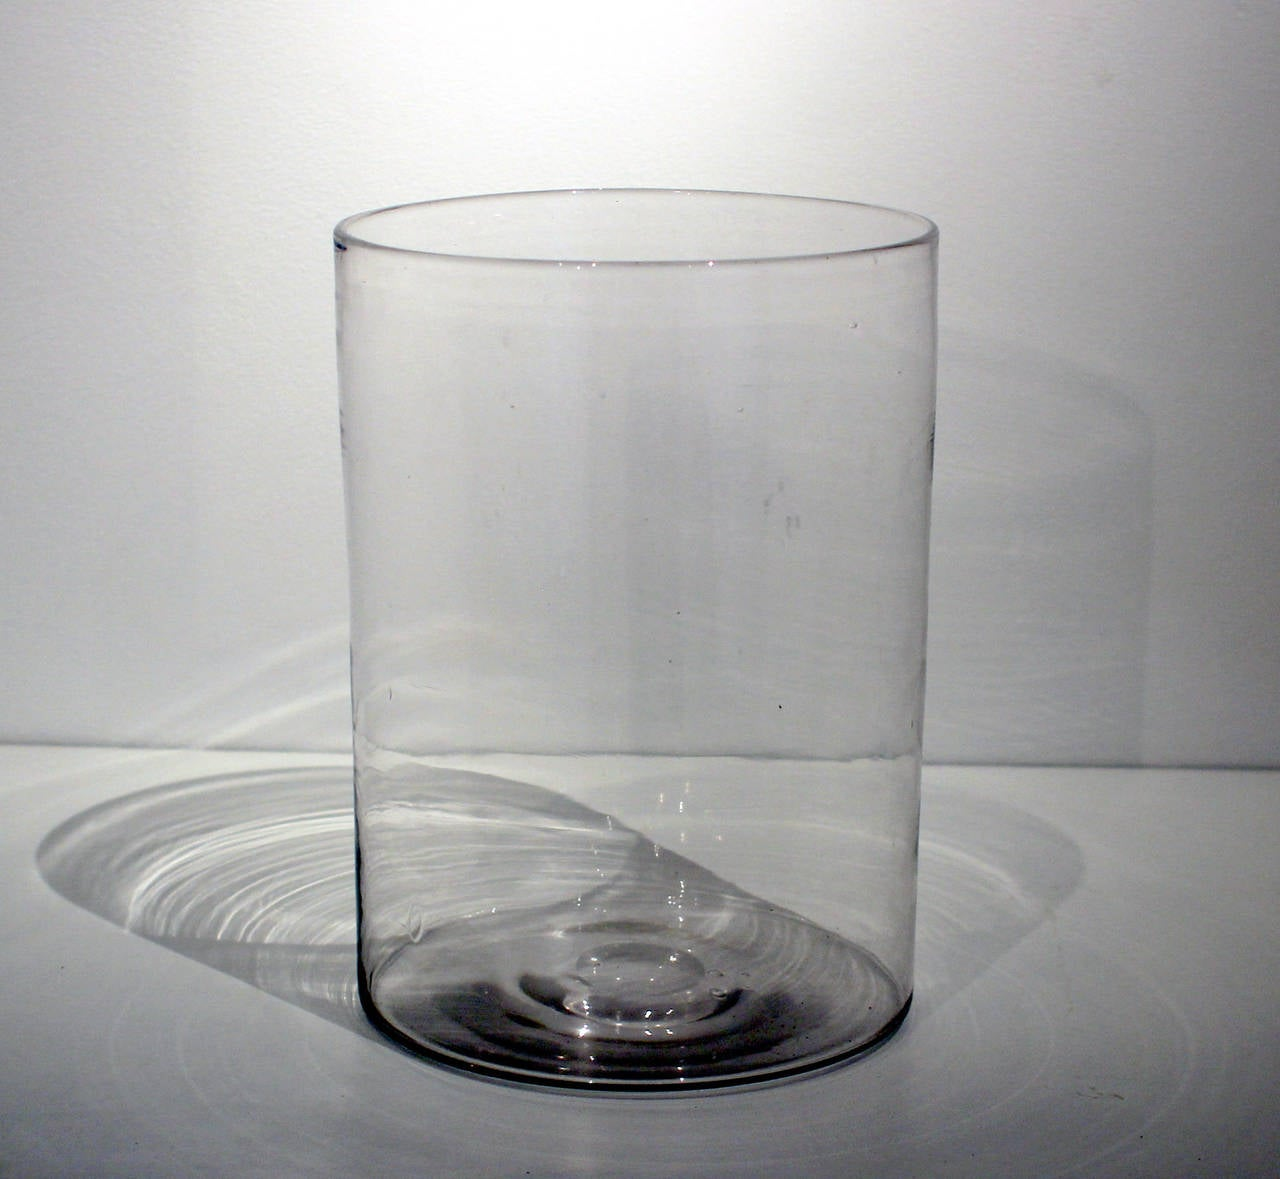 Large Glass Vessel : Fine and Large Blown Glass Vessel, Mid-19th Century For Sale at ...